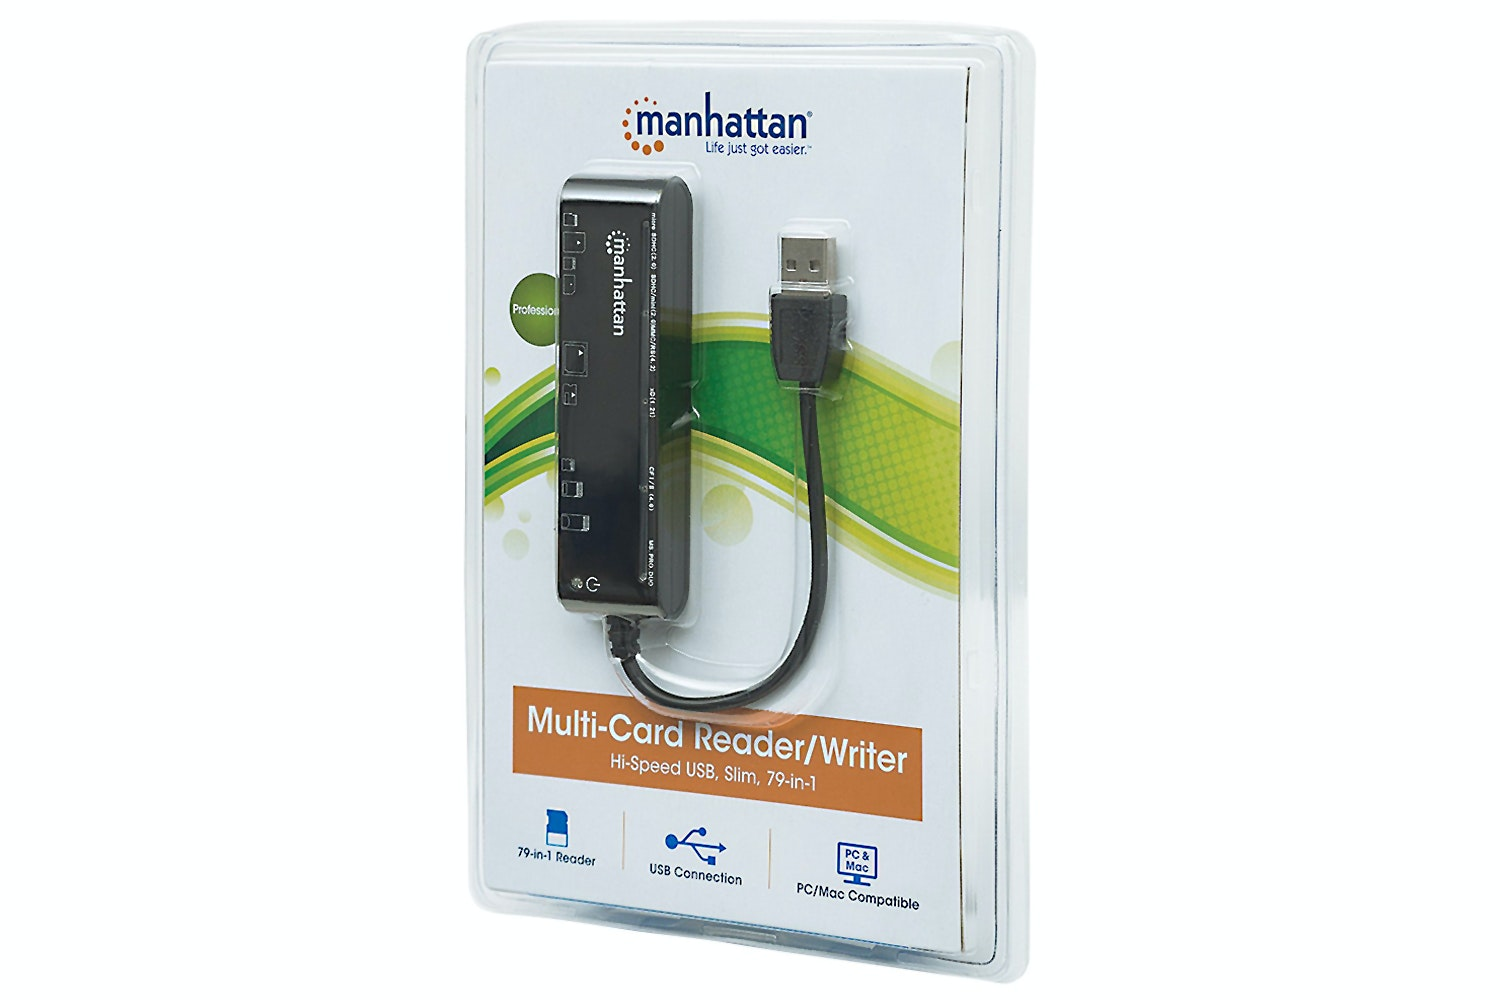 Manhattan 79-in-1 Multi-Card Reader/Writer